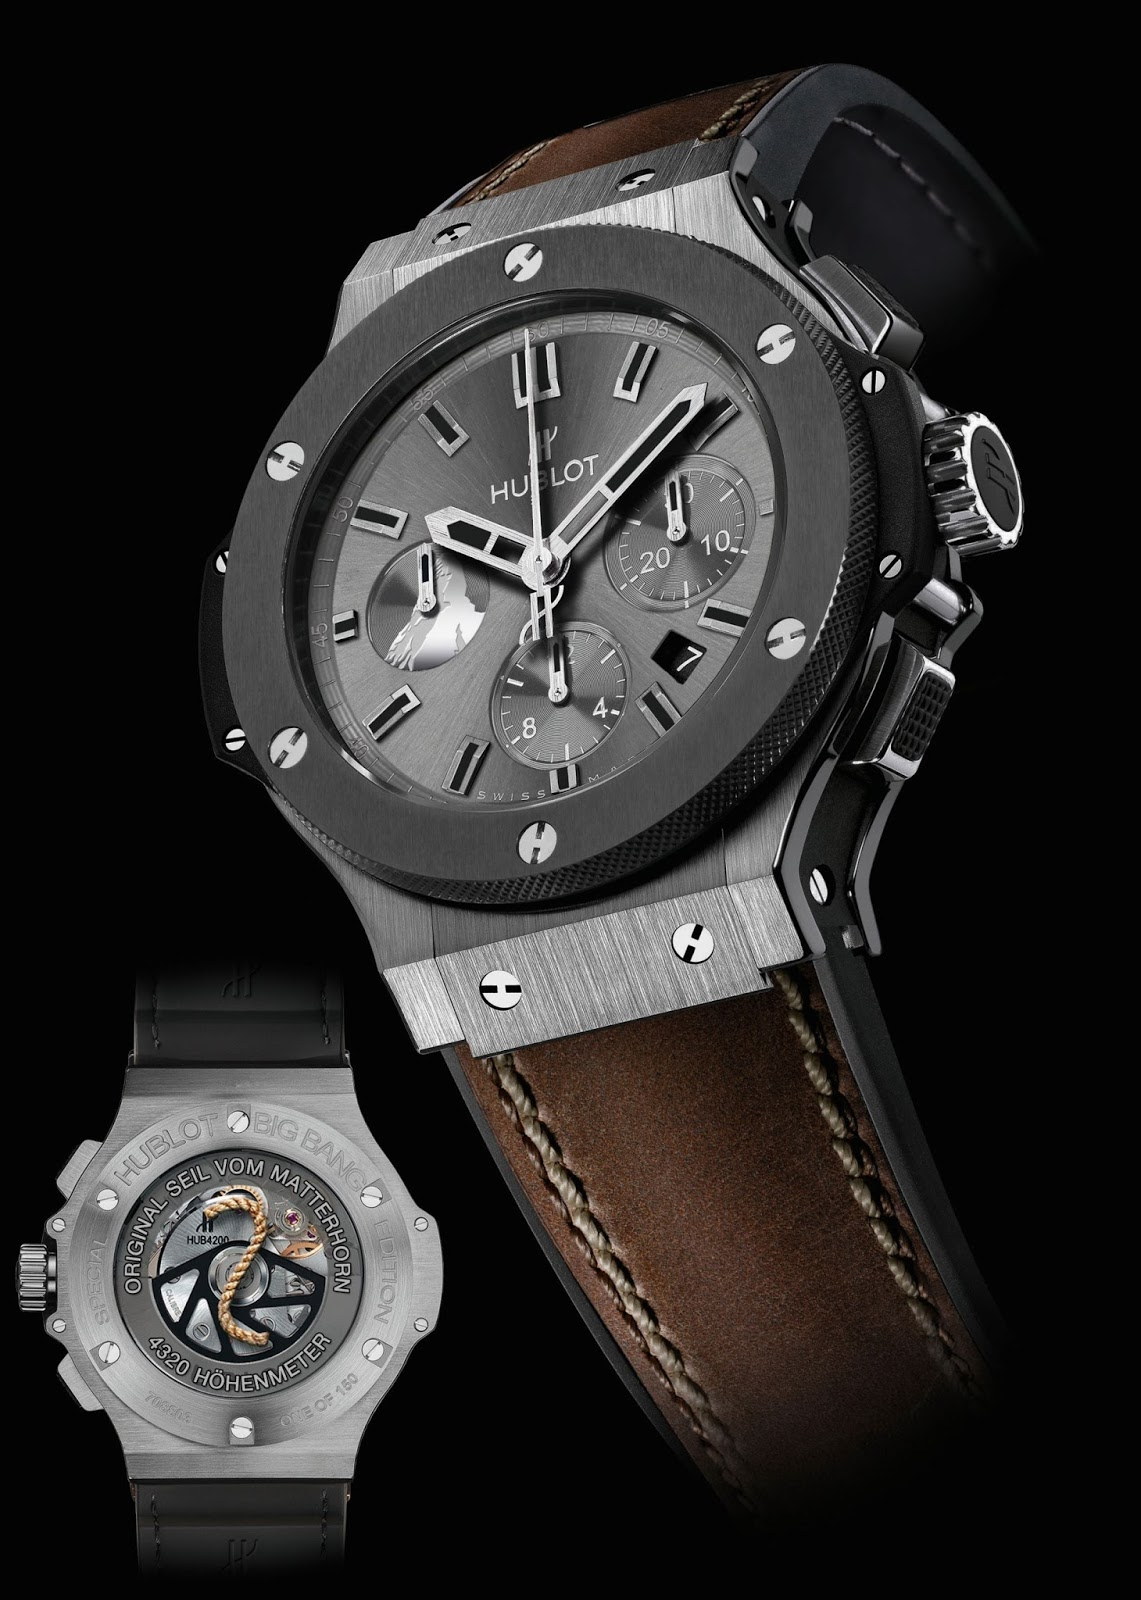 Hublot Uhr Neue Uhr : Hublot Big Bang Zermatt - Tungsten & Red Gold